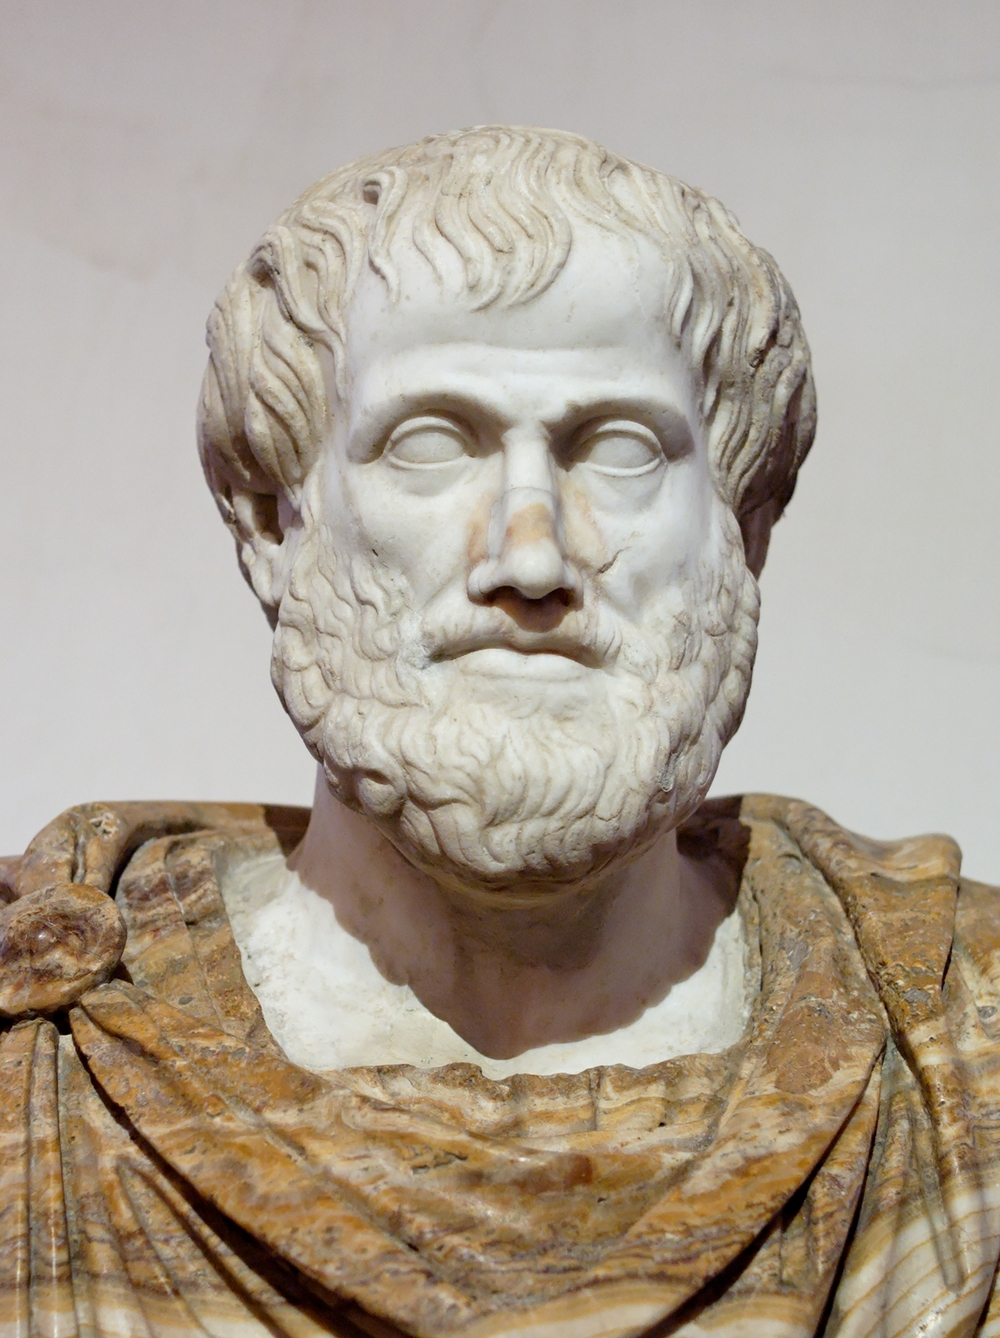 Roman copy in marble of a Greek bronze   bust of Aristotle by Lysippus   330 BC.